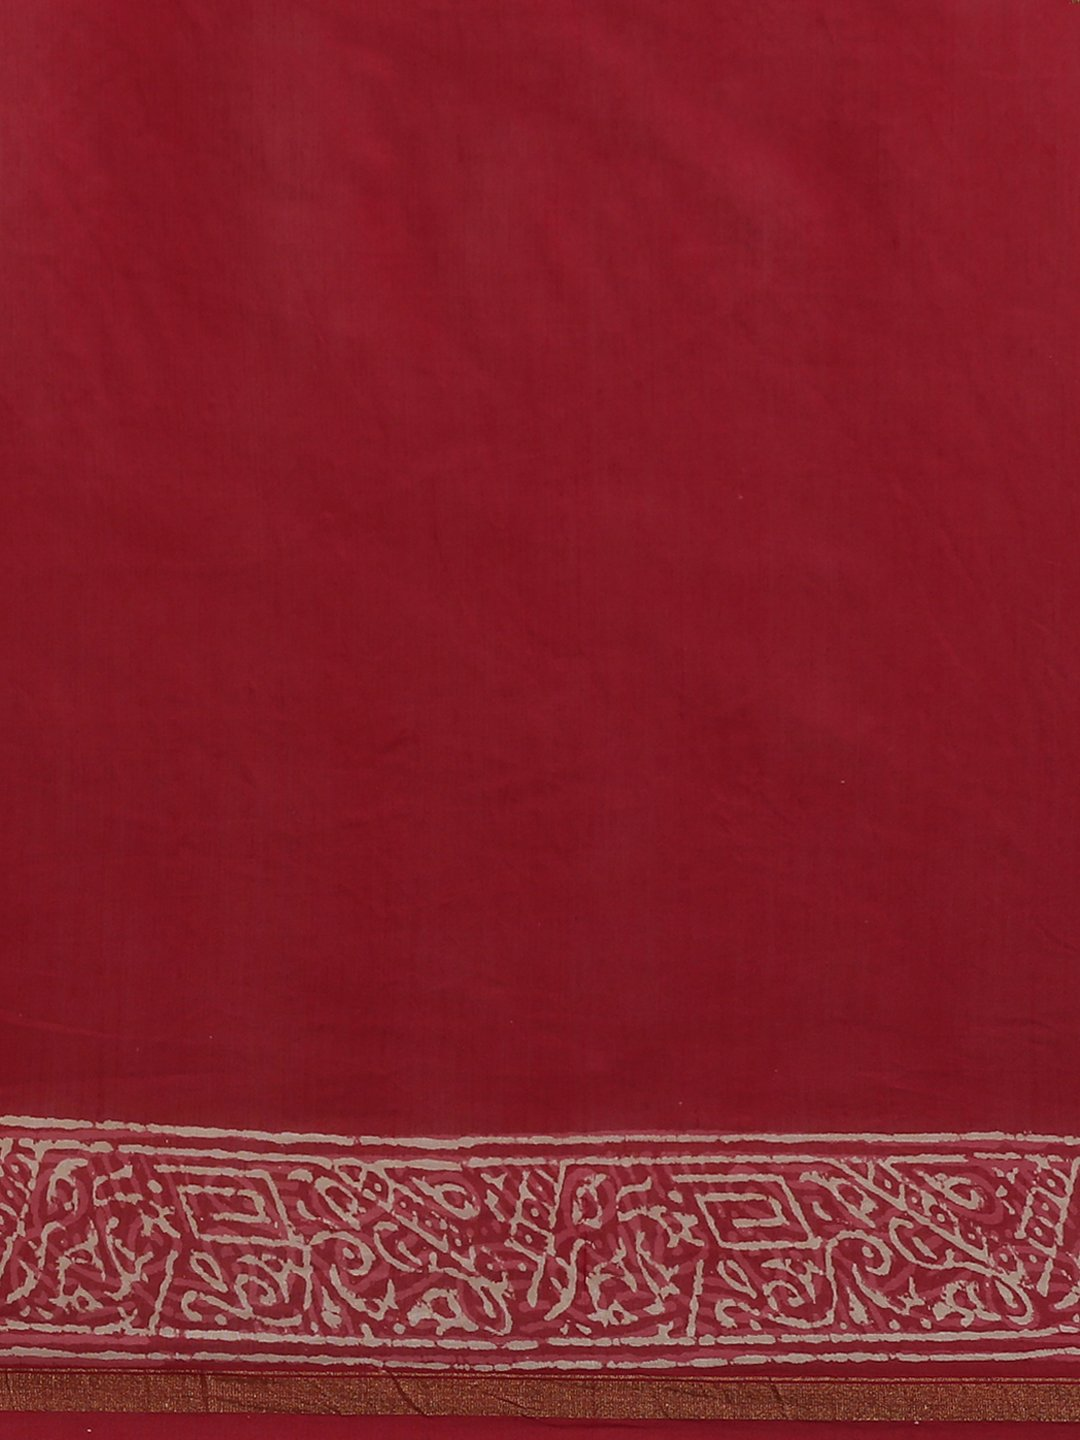 Maroon & Off-White Handblock Print Bagru Saree-Saree-Kalakari India-BHKPSA0106-Cotton, Geographical Indication, Hand Blocks, Hand Crafted, Heritage Prints, Sanganeri, Sarees, Sustainable Fabrics-[Linen,Ethnic,wear,Fashionista,Handloom,Handicraft,Indigo,blockprint,block,print,Cotton,Chanderi,Blue, latest,classy,party,bollywood,trendy,summer,style,traditional,formal,elegant,unique,style,hand,block,print, dabu,booti,gift,present,glamorous,affordable,collectible,Sari,Saree,printed, holi, Diwali, bir